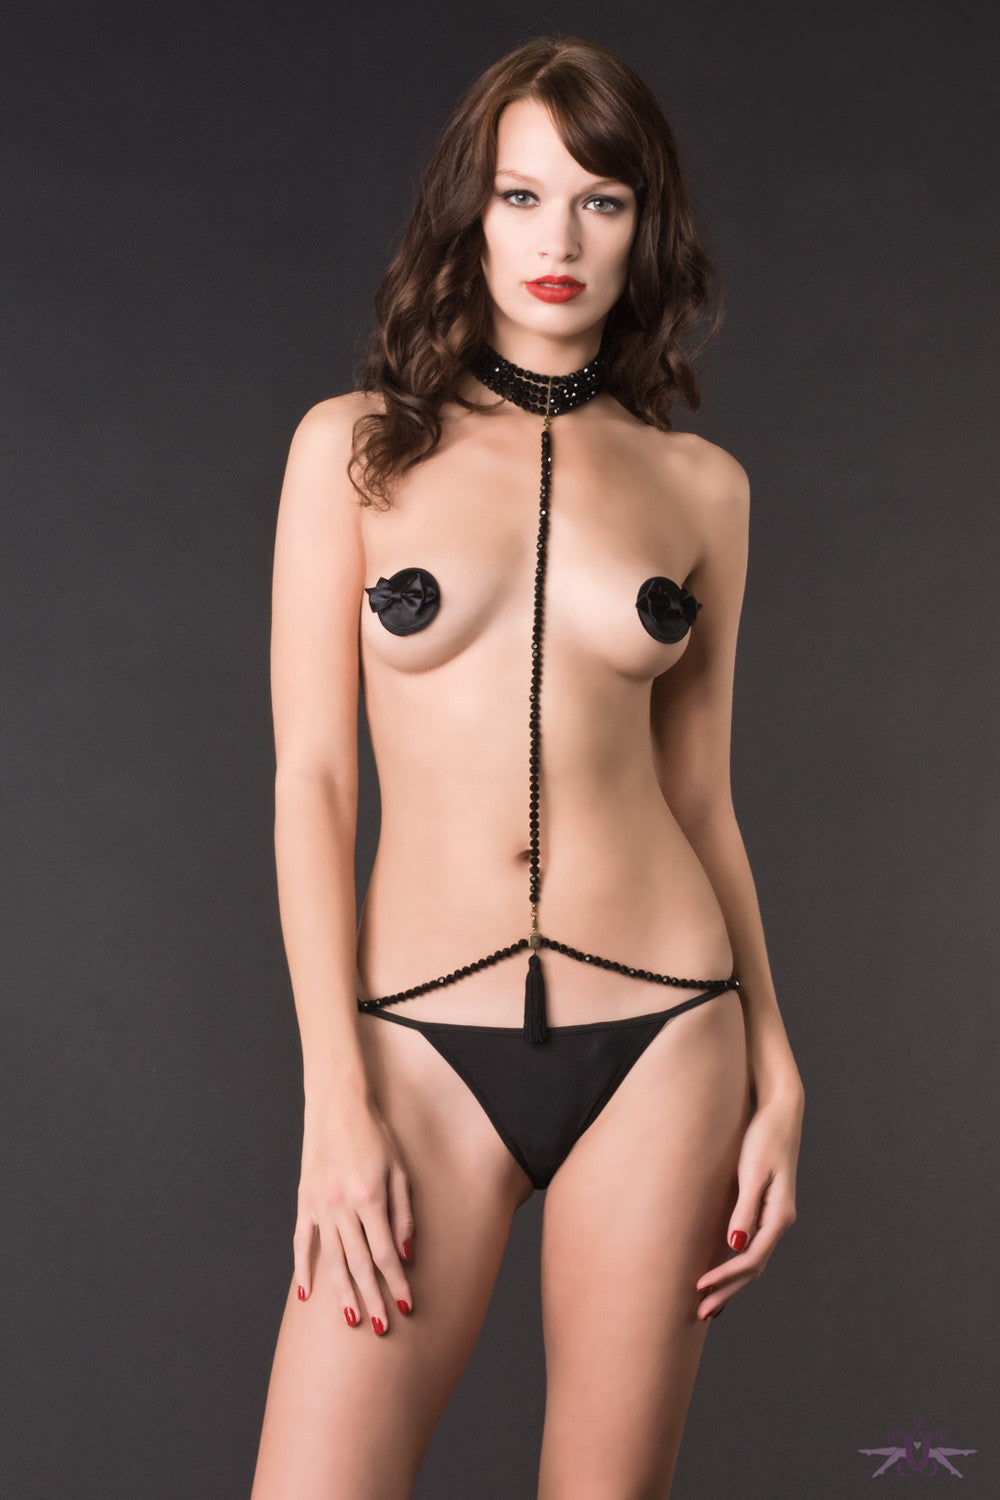 Maison Close A Ton Cou - Jet Pearl Harness